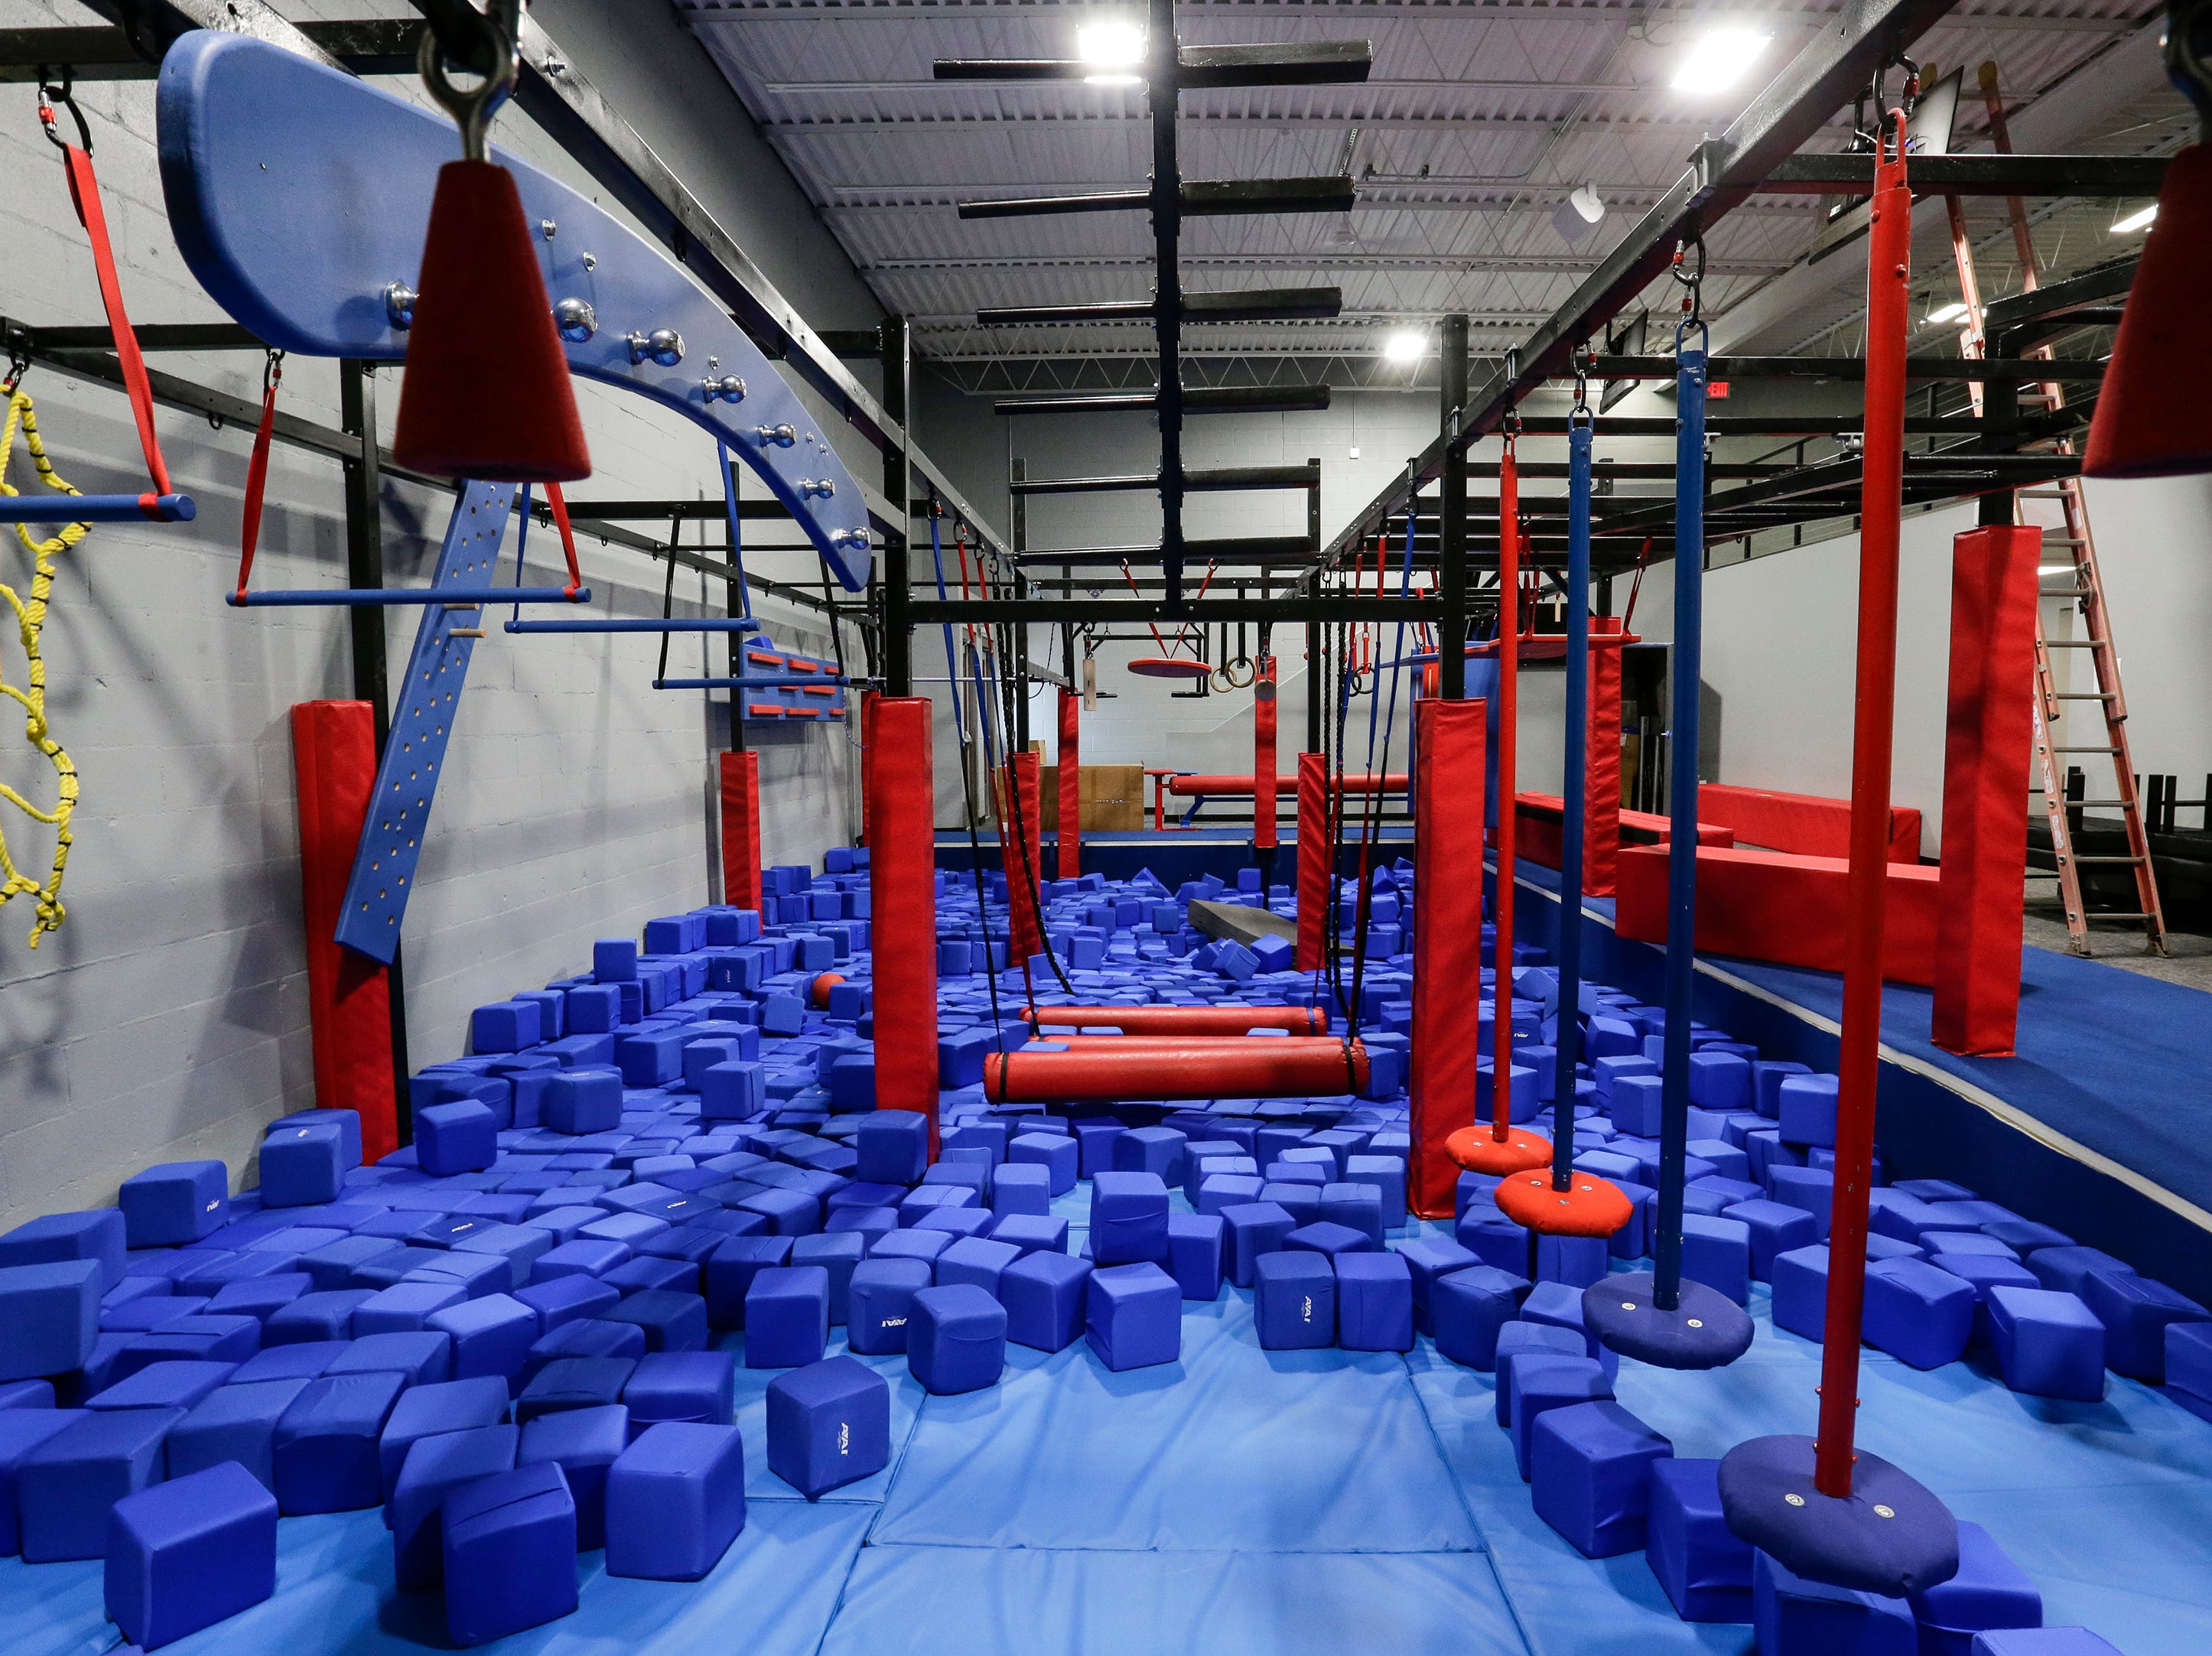 The ninja gym at Strand Adventures Wednesday, May 1, 2019, in Manitowoc, Wis. Joshua Clark/USA TODAY NETWORK-Wisconsin